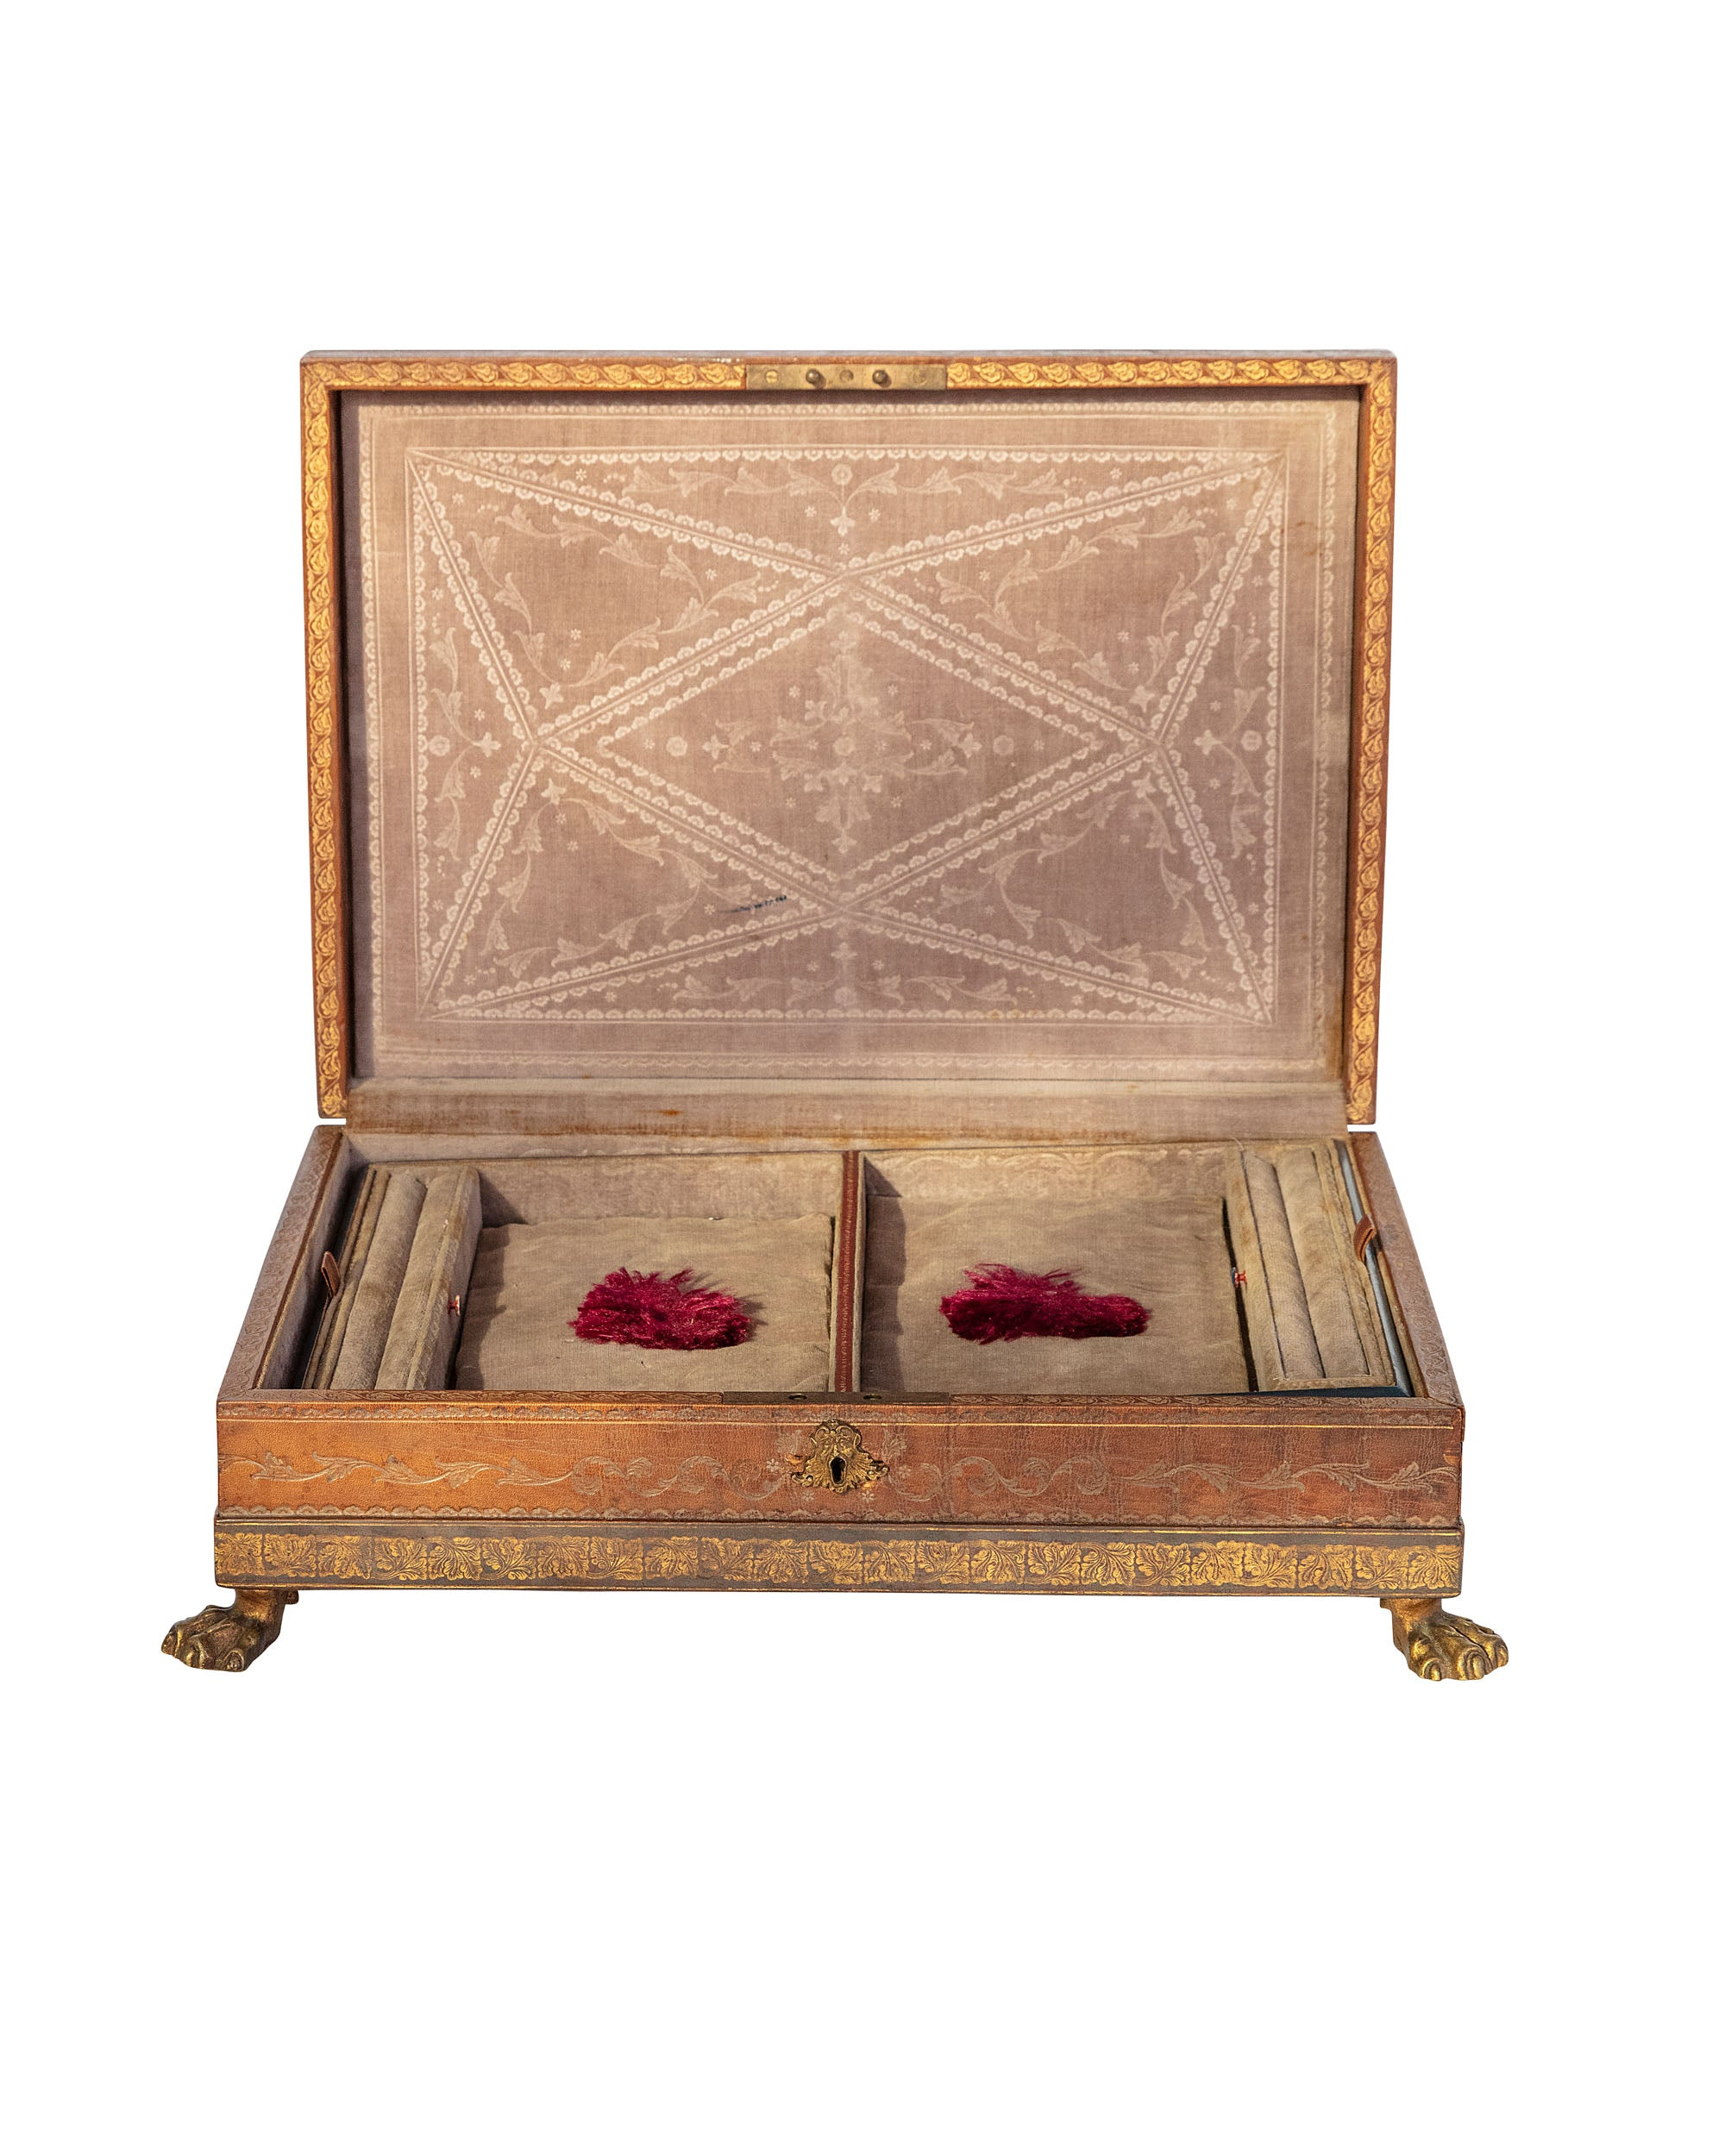 Engraved leather-lined jewelry box with brass feet and velvet interior